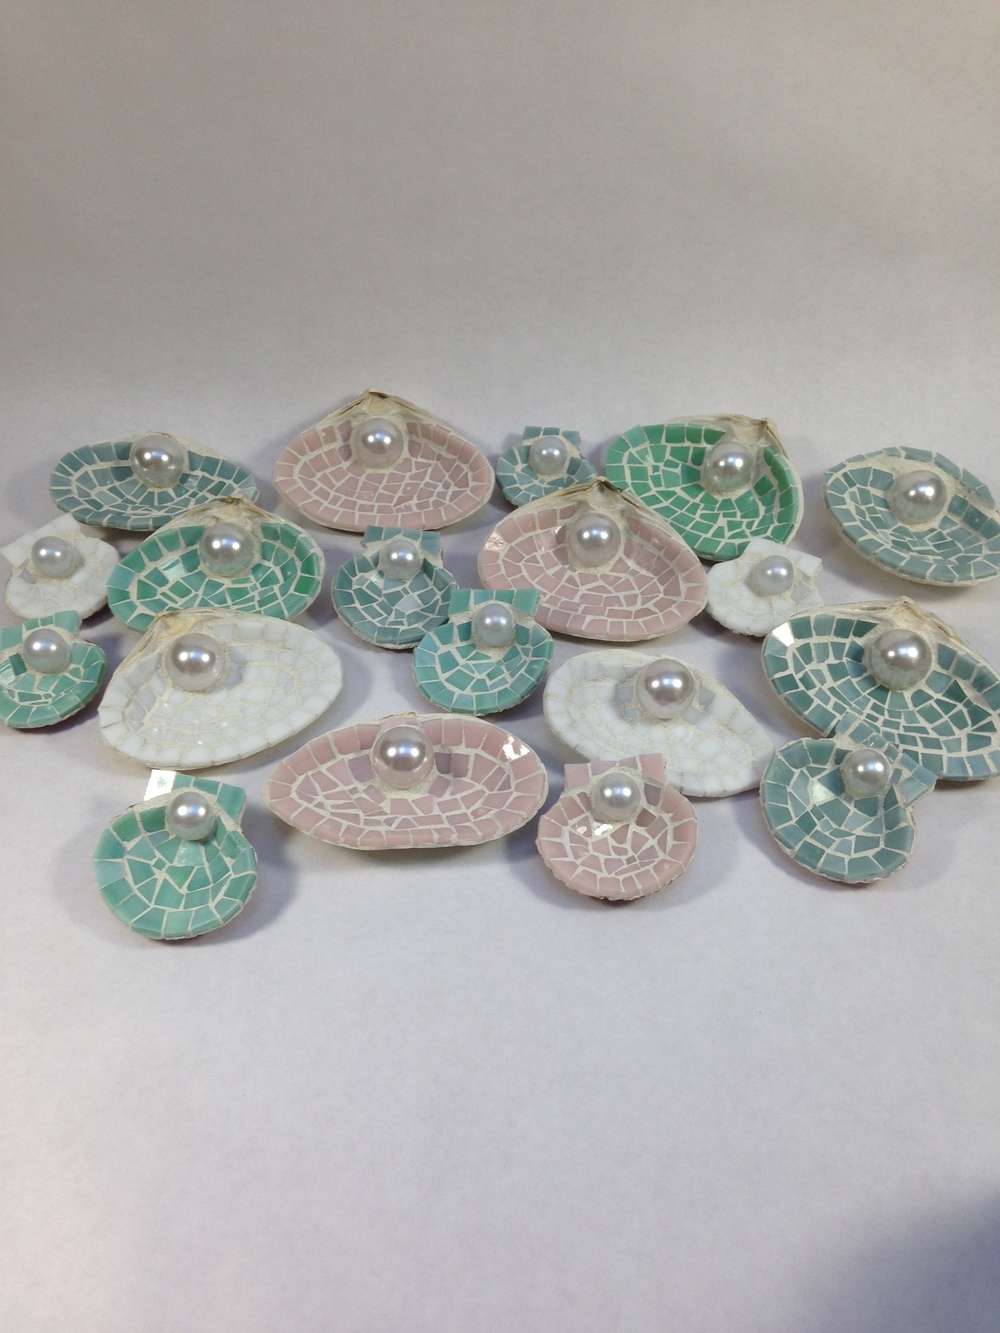 seashell wedding ring holders.jpg